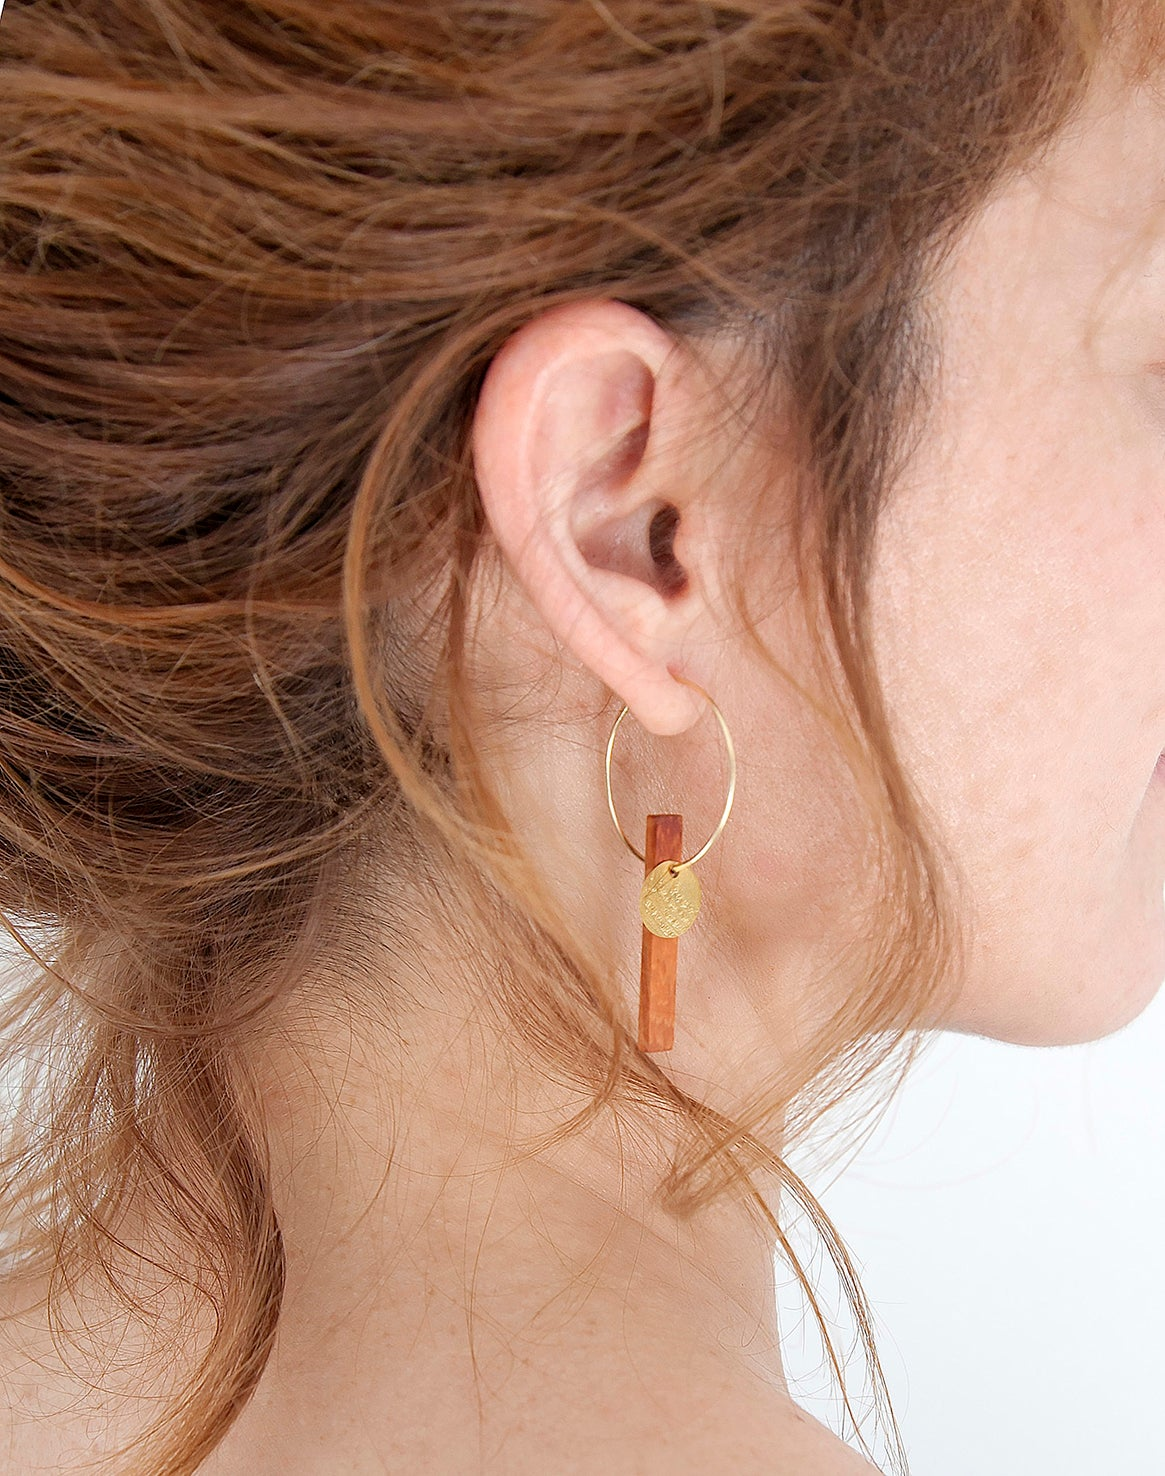 Image of EARRINGS. Gold_Palo Rosa. -20% DISCOUNT